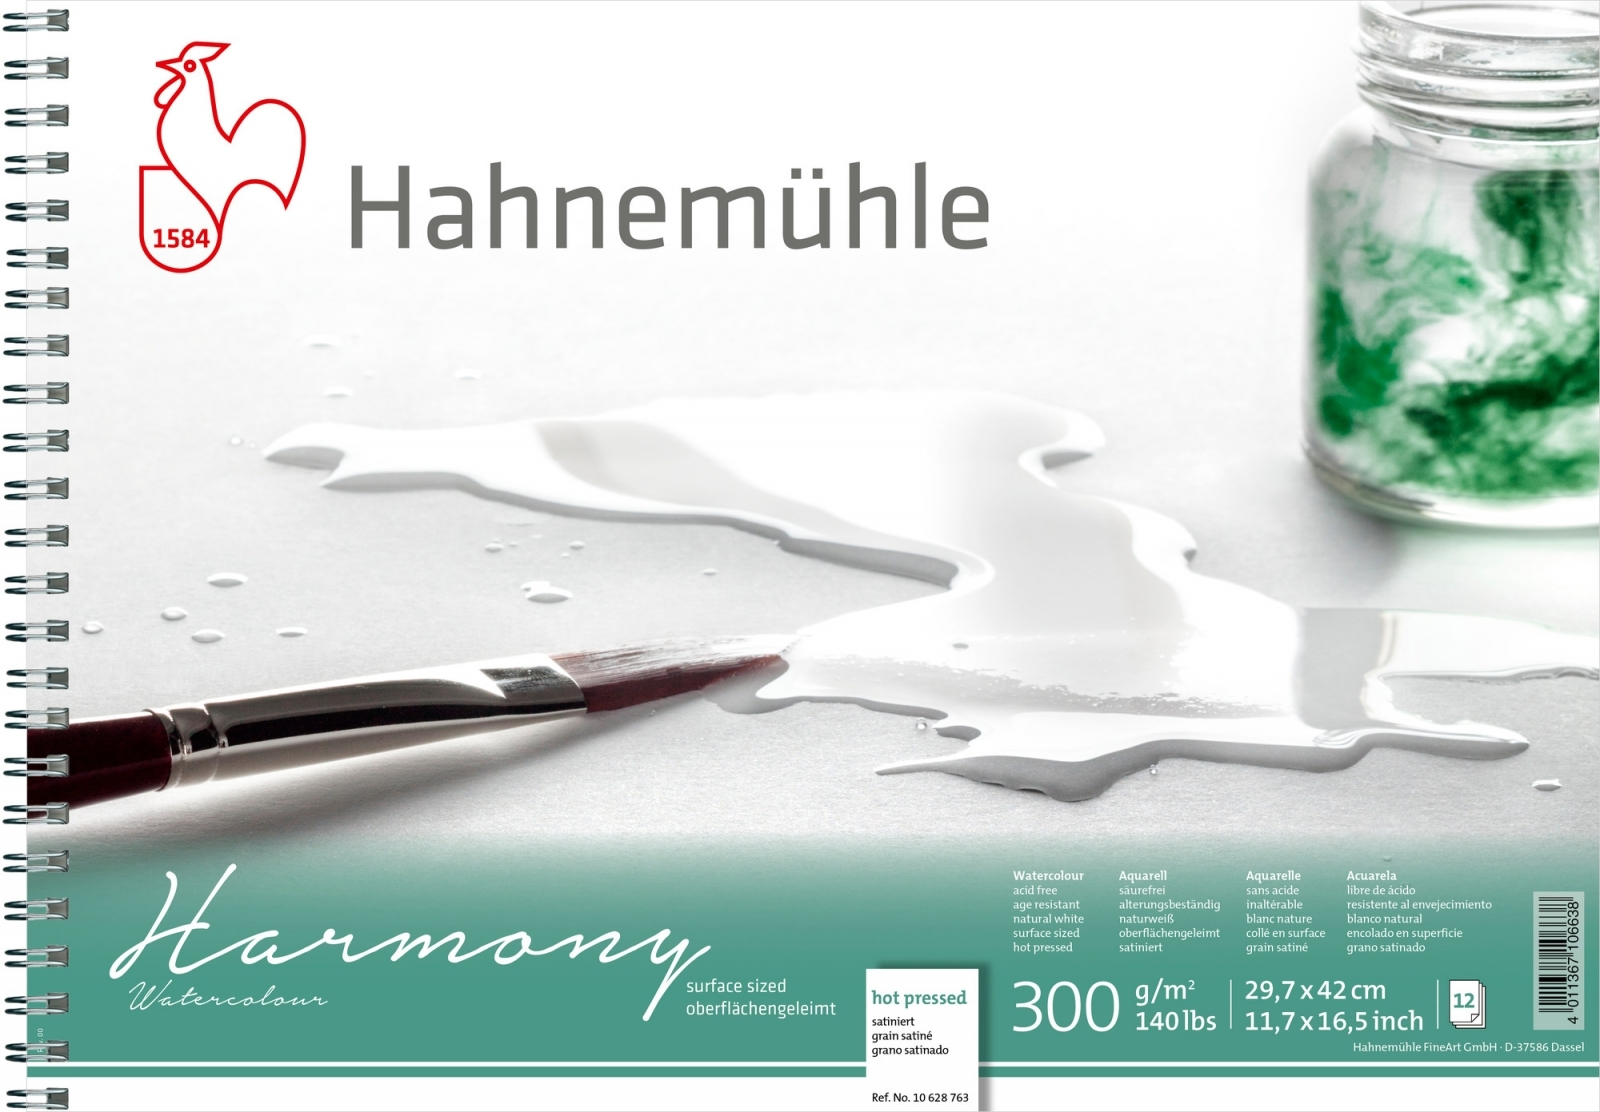 PAPEL HAHNEMUHLE HARMONY WATERCOLOUR, 300 G/M² HOT PRESSED 12fls 29,7X42cm - A3 C/ESPIRAL (10628763) - Papelaria Botafogo